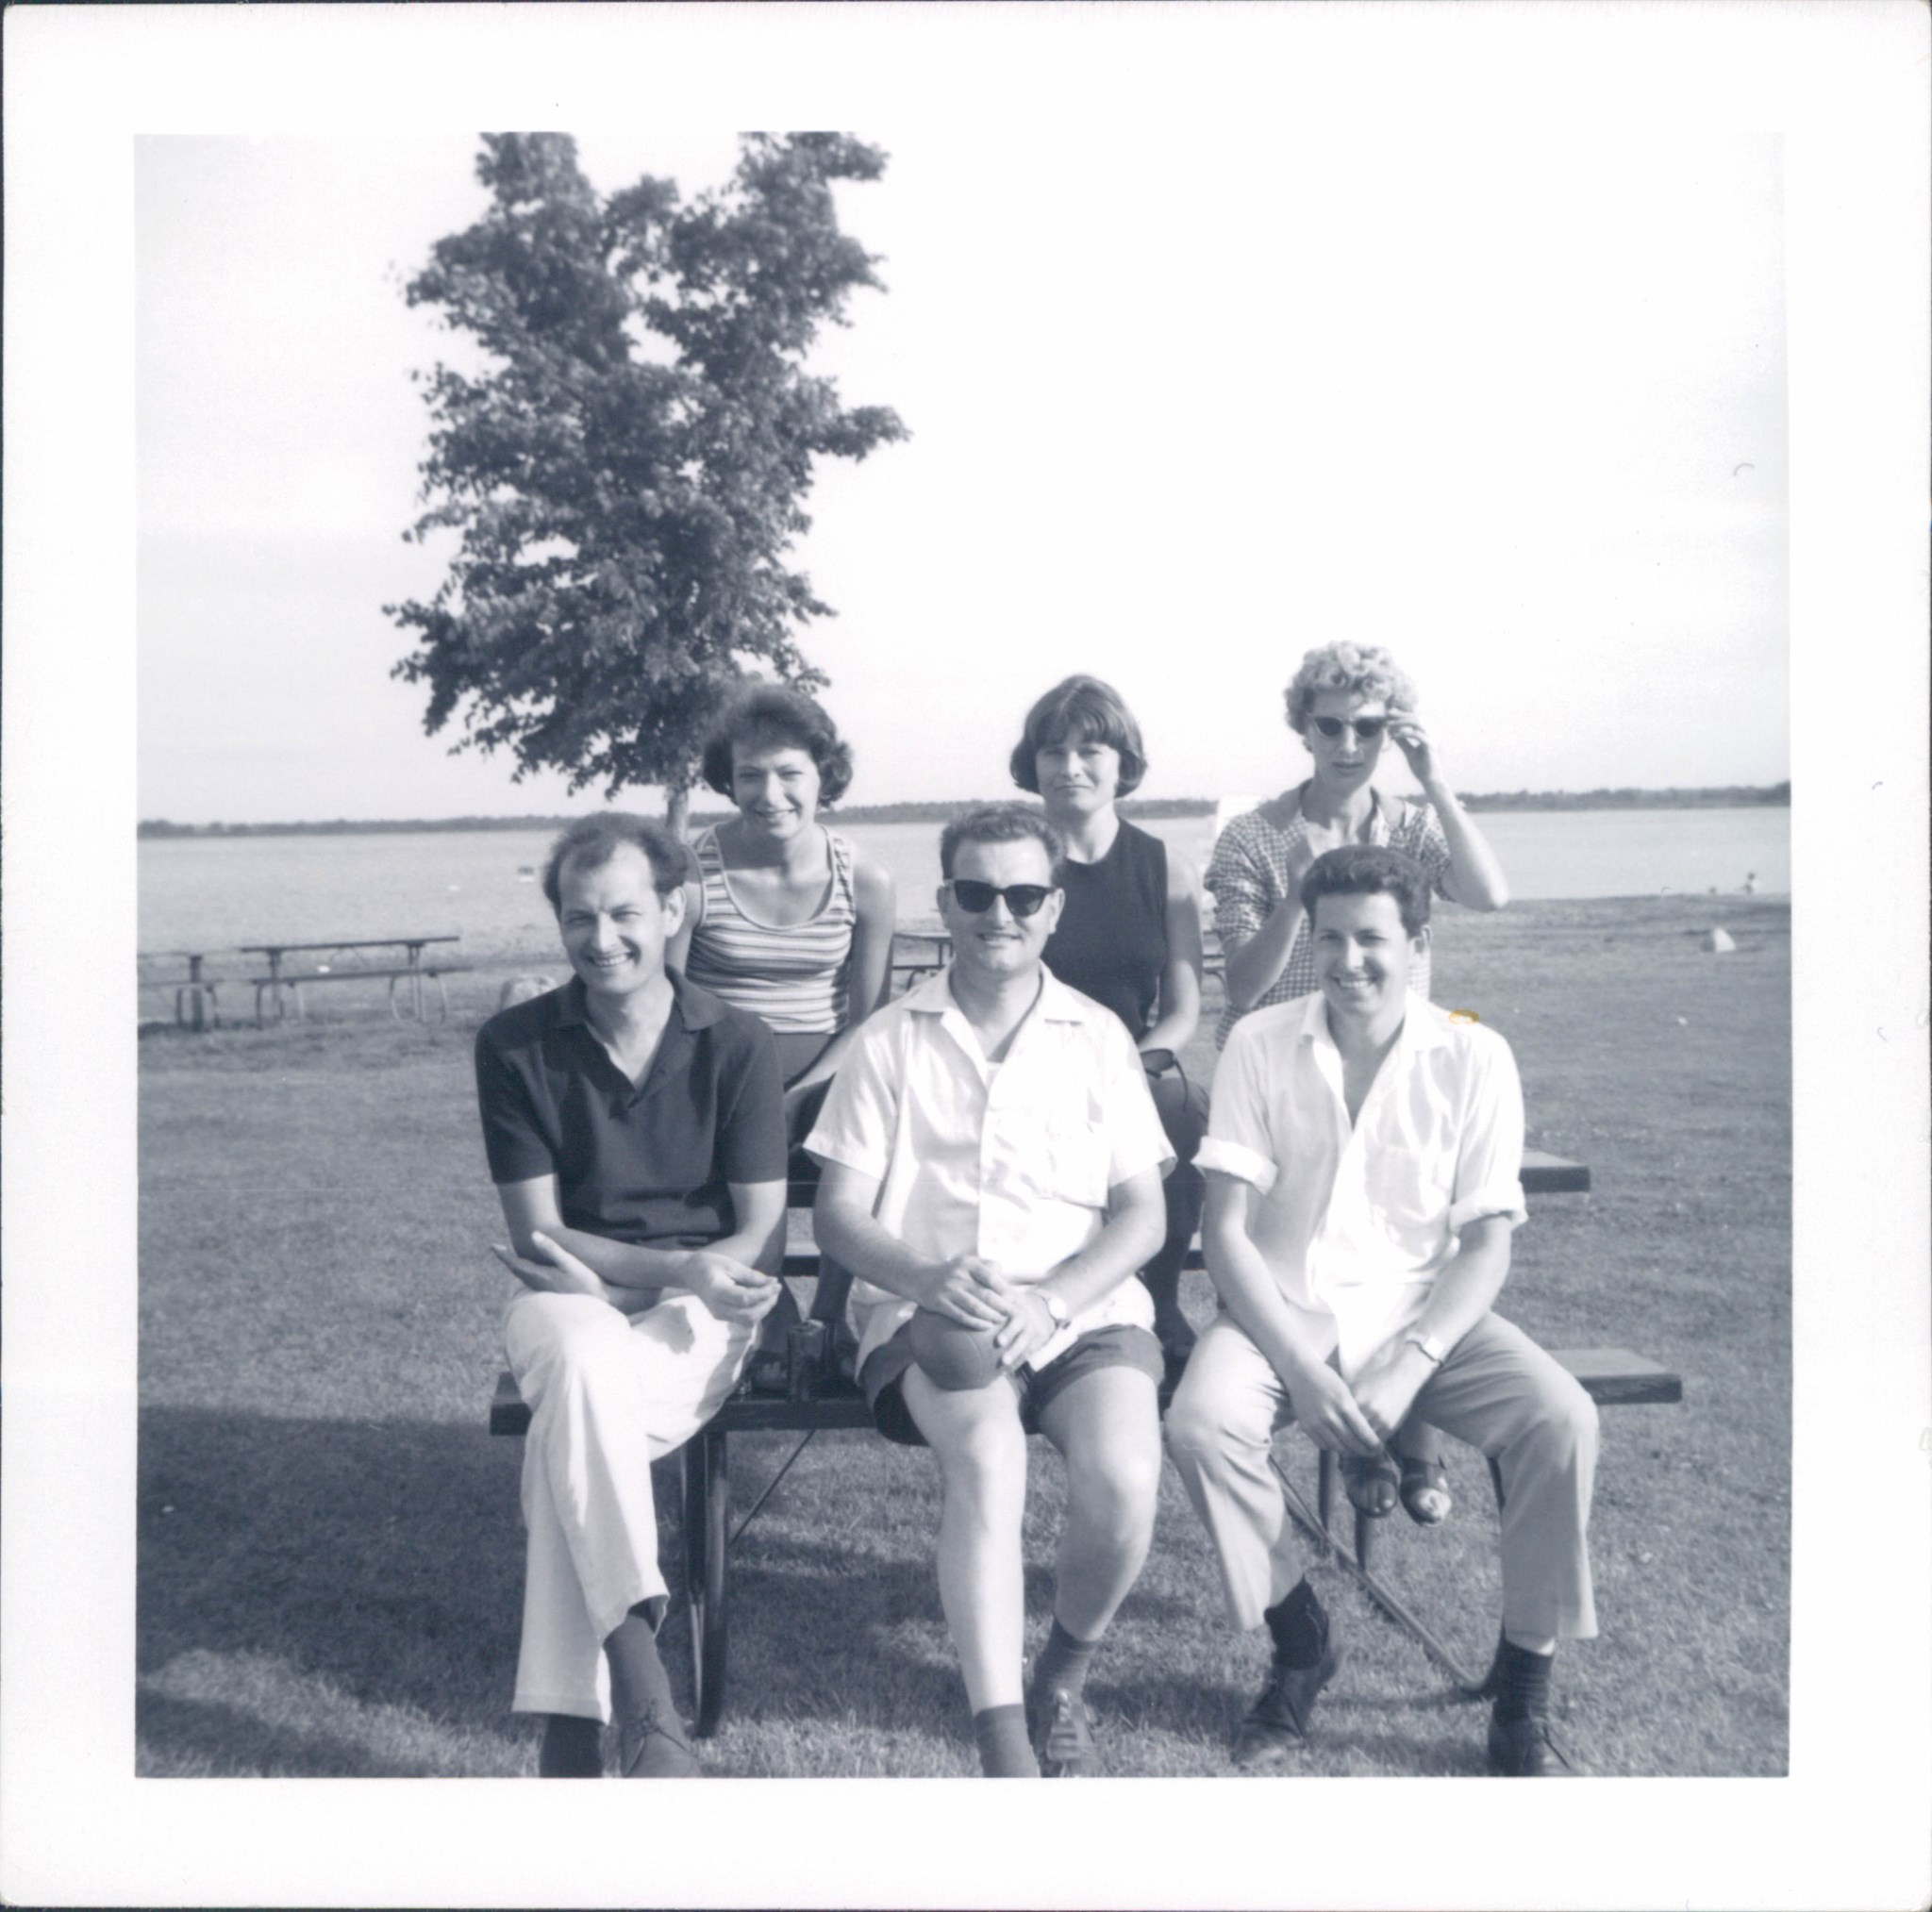 Lena, Irene, Lou, Peter, Ron and Ray